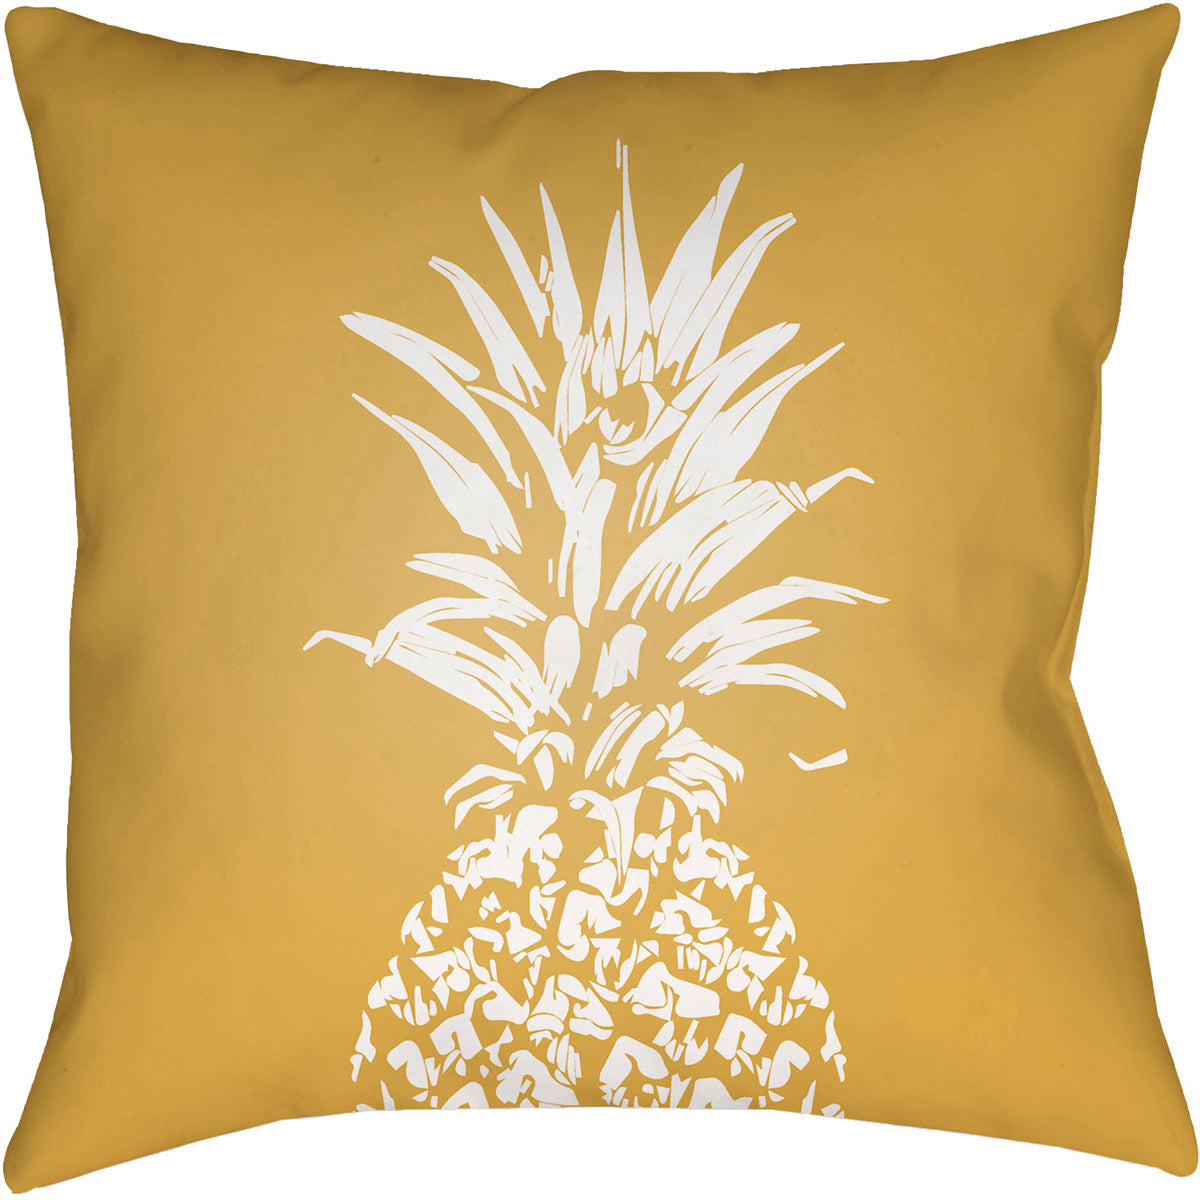 Pineapple Outdoor Pillow